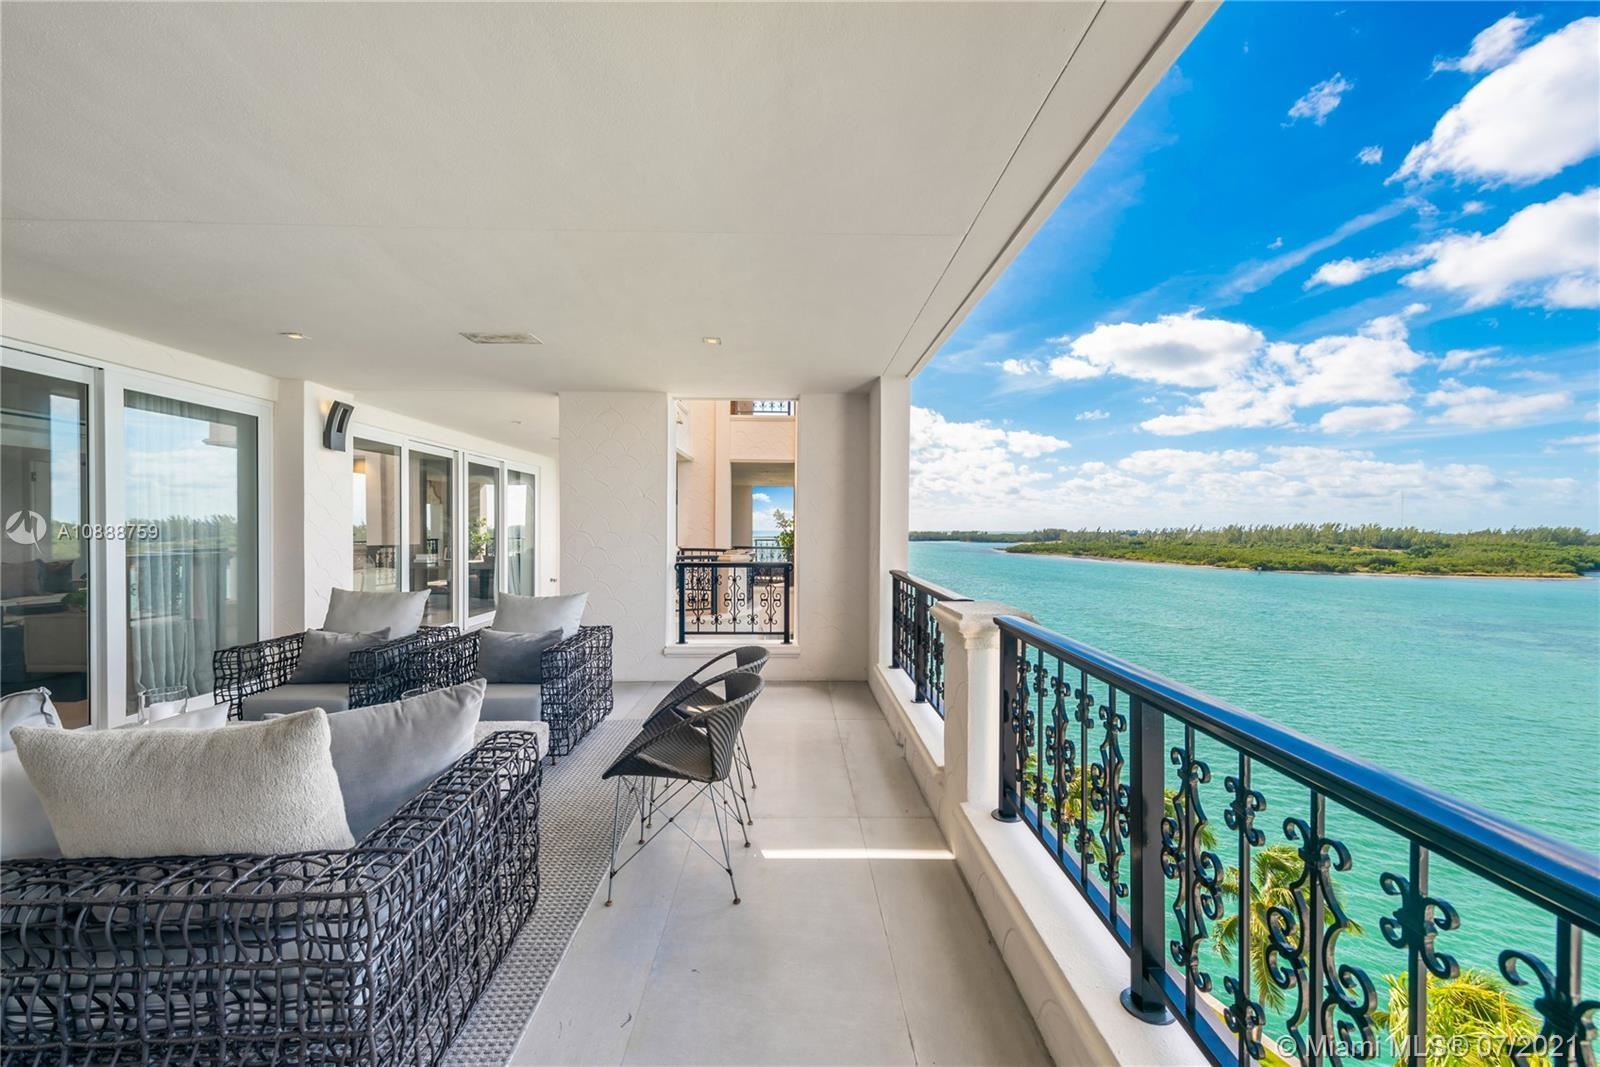 Photo 55 of Listing MLS a10888759 in 5282 Fisher Island Dr #5282 Miami FL 33109